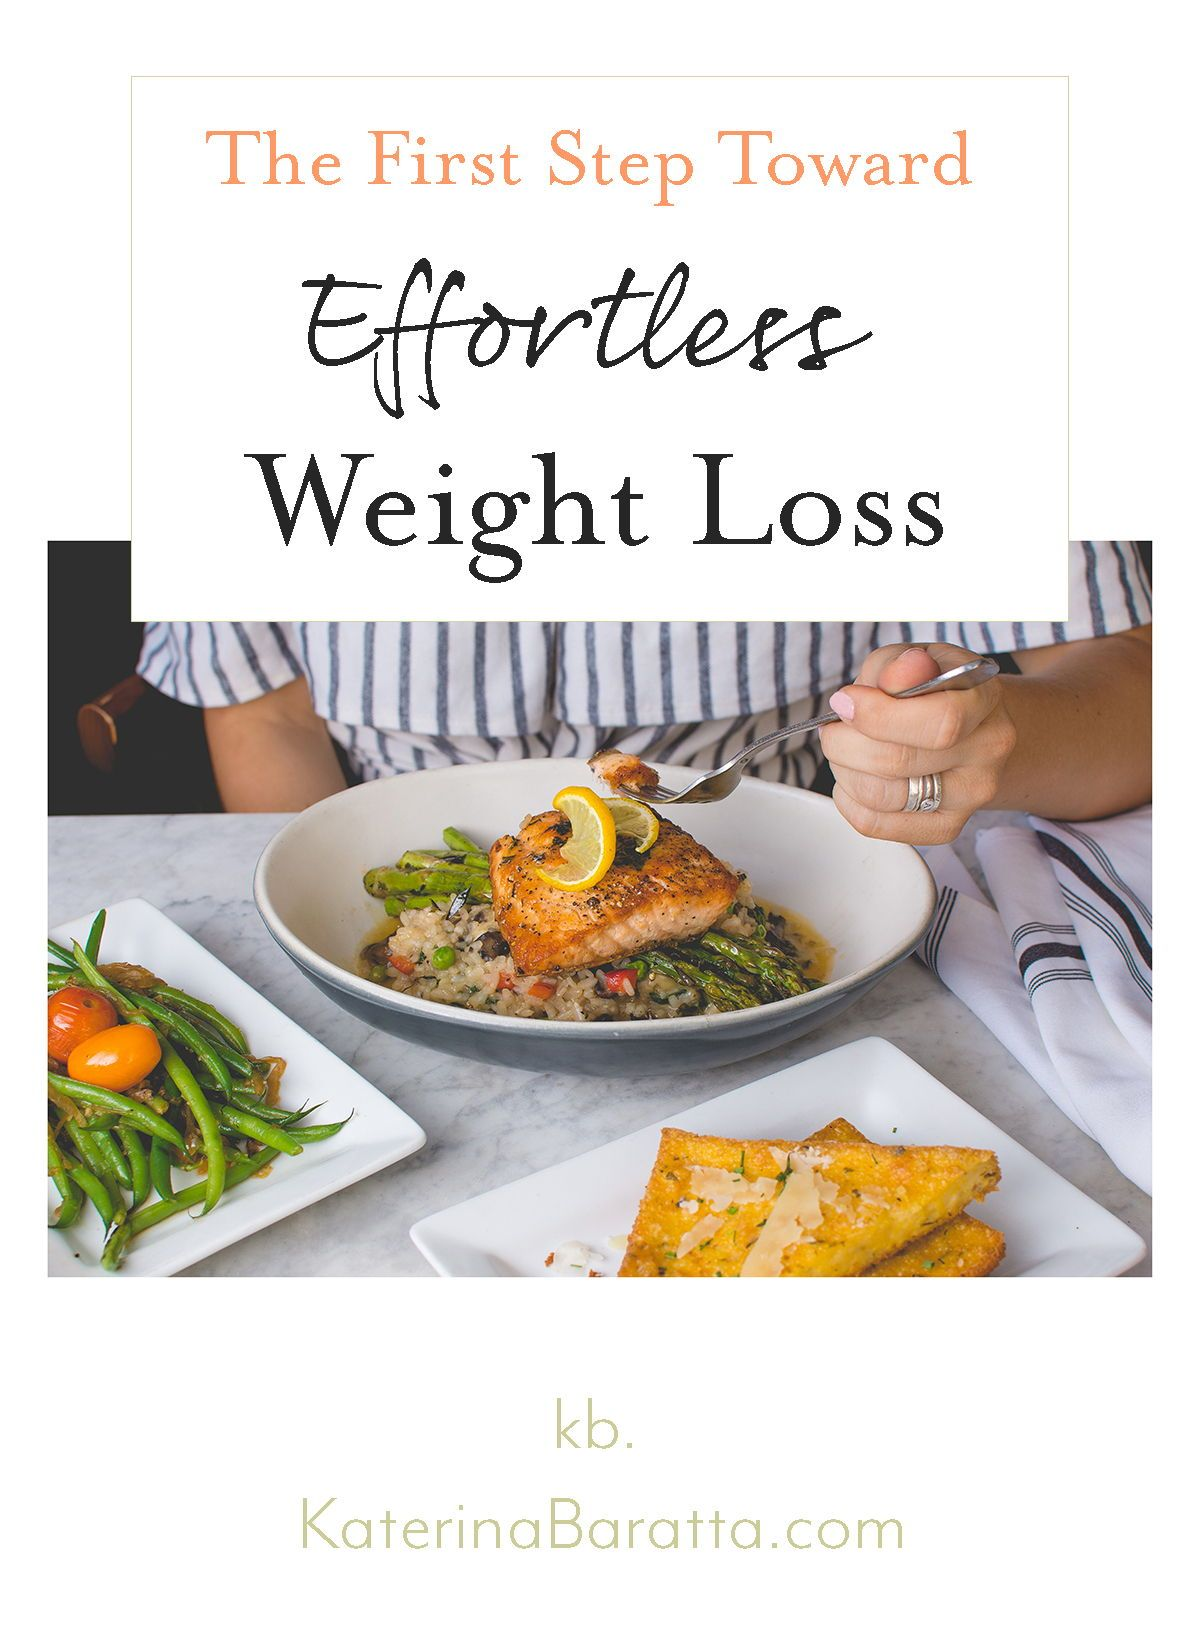 How do you manifest weight loss